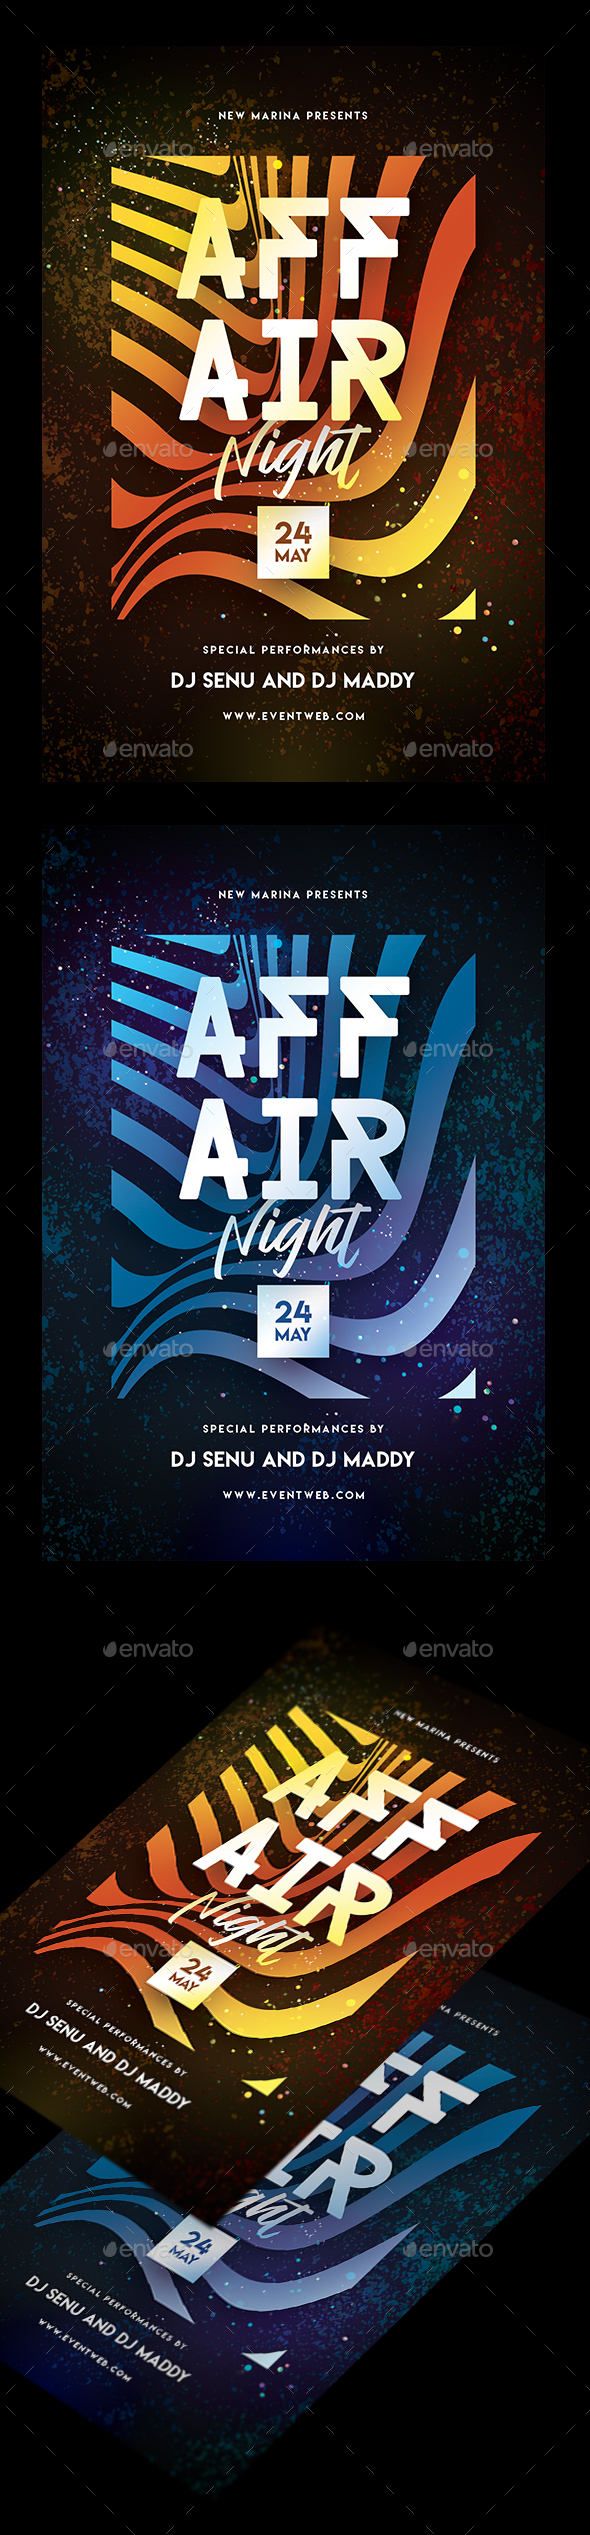 Affair Night Party Flyer - Clubs & Parties Events